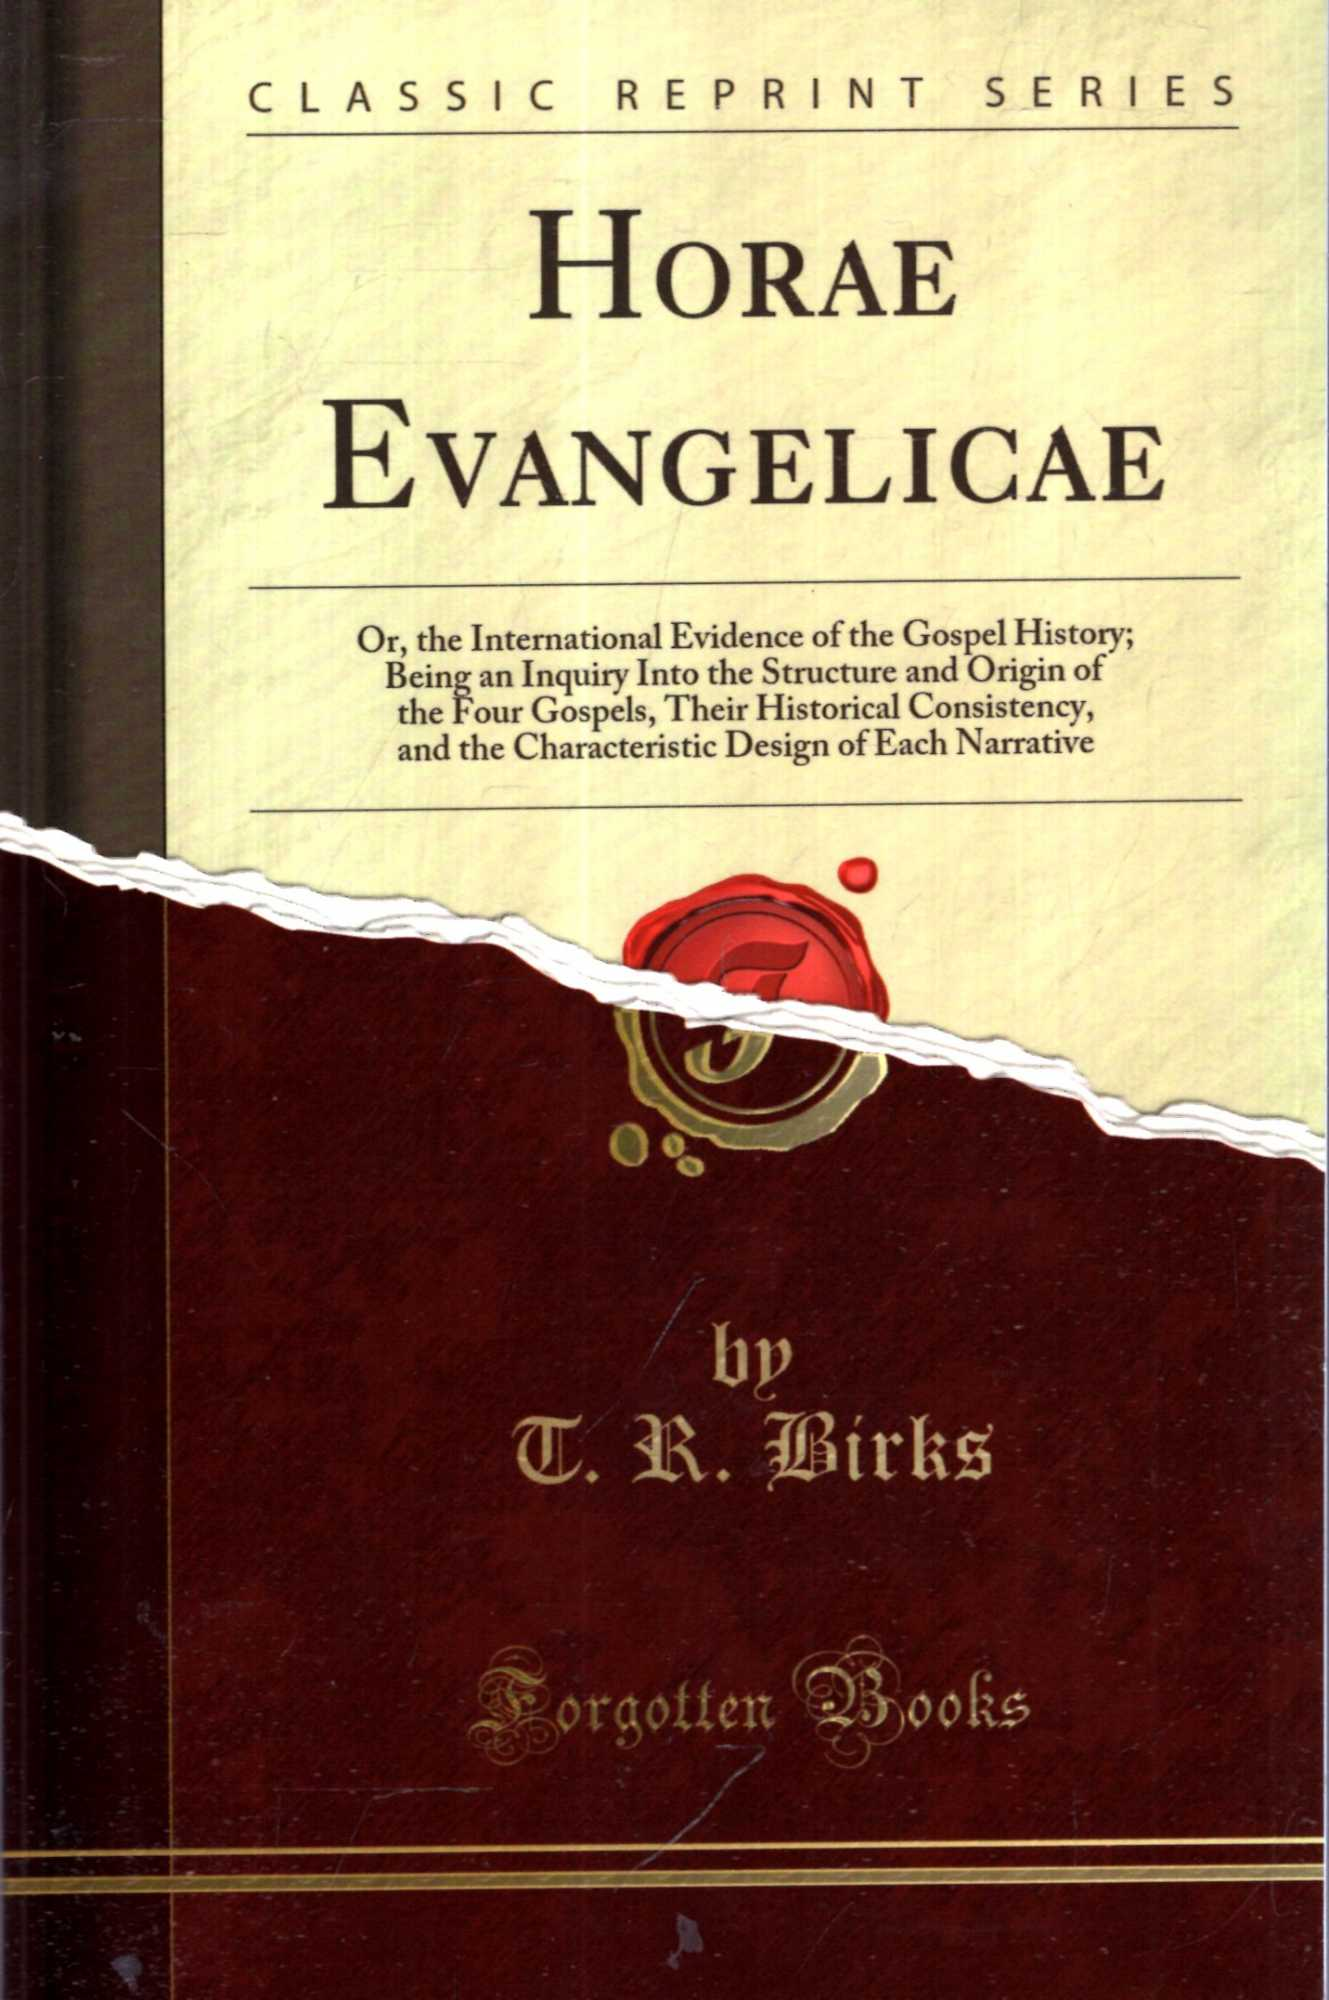 Image for Horae Evangelicae : Or, the International Evidence of the Gospel History; Being an Inquiry Into the Structure and Origin of the Four Gospels, Their ... Design of Each Narrative (Classic Reprint)